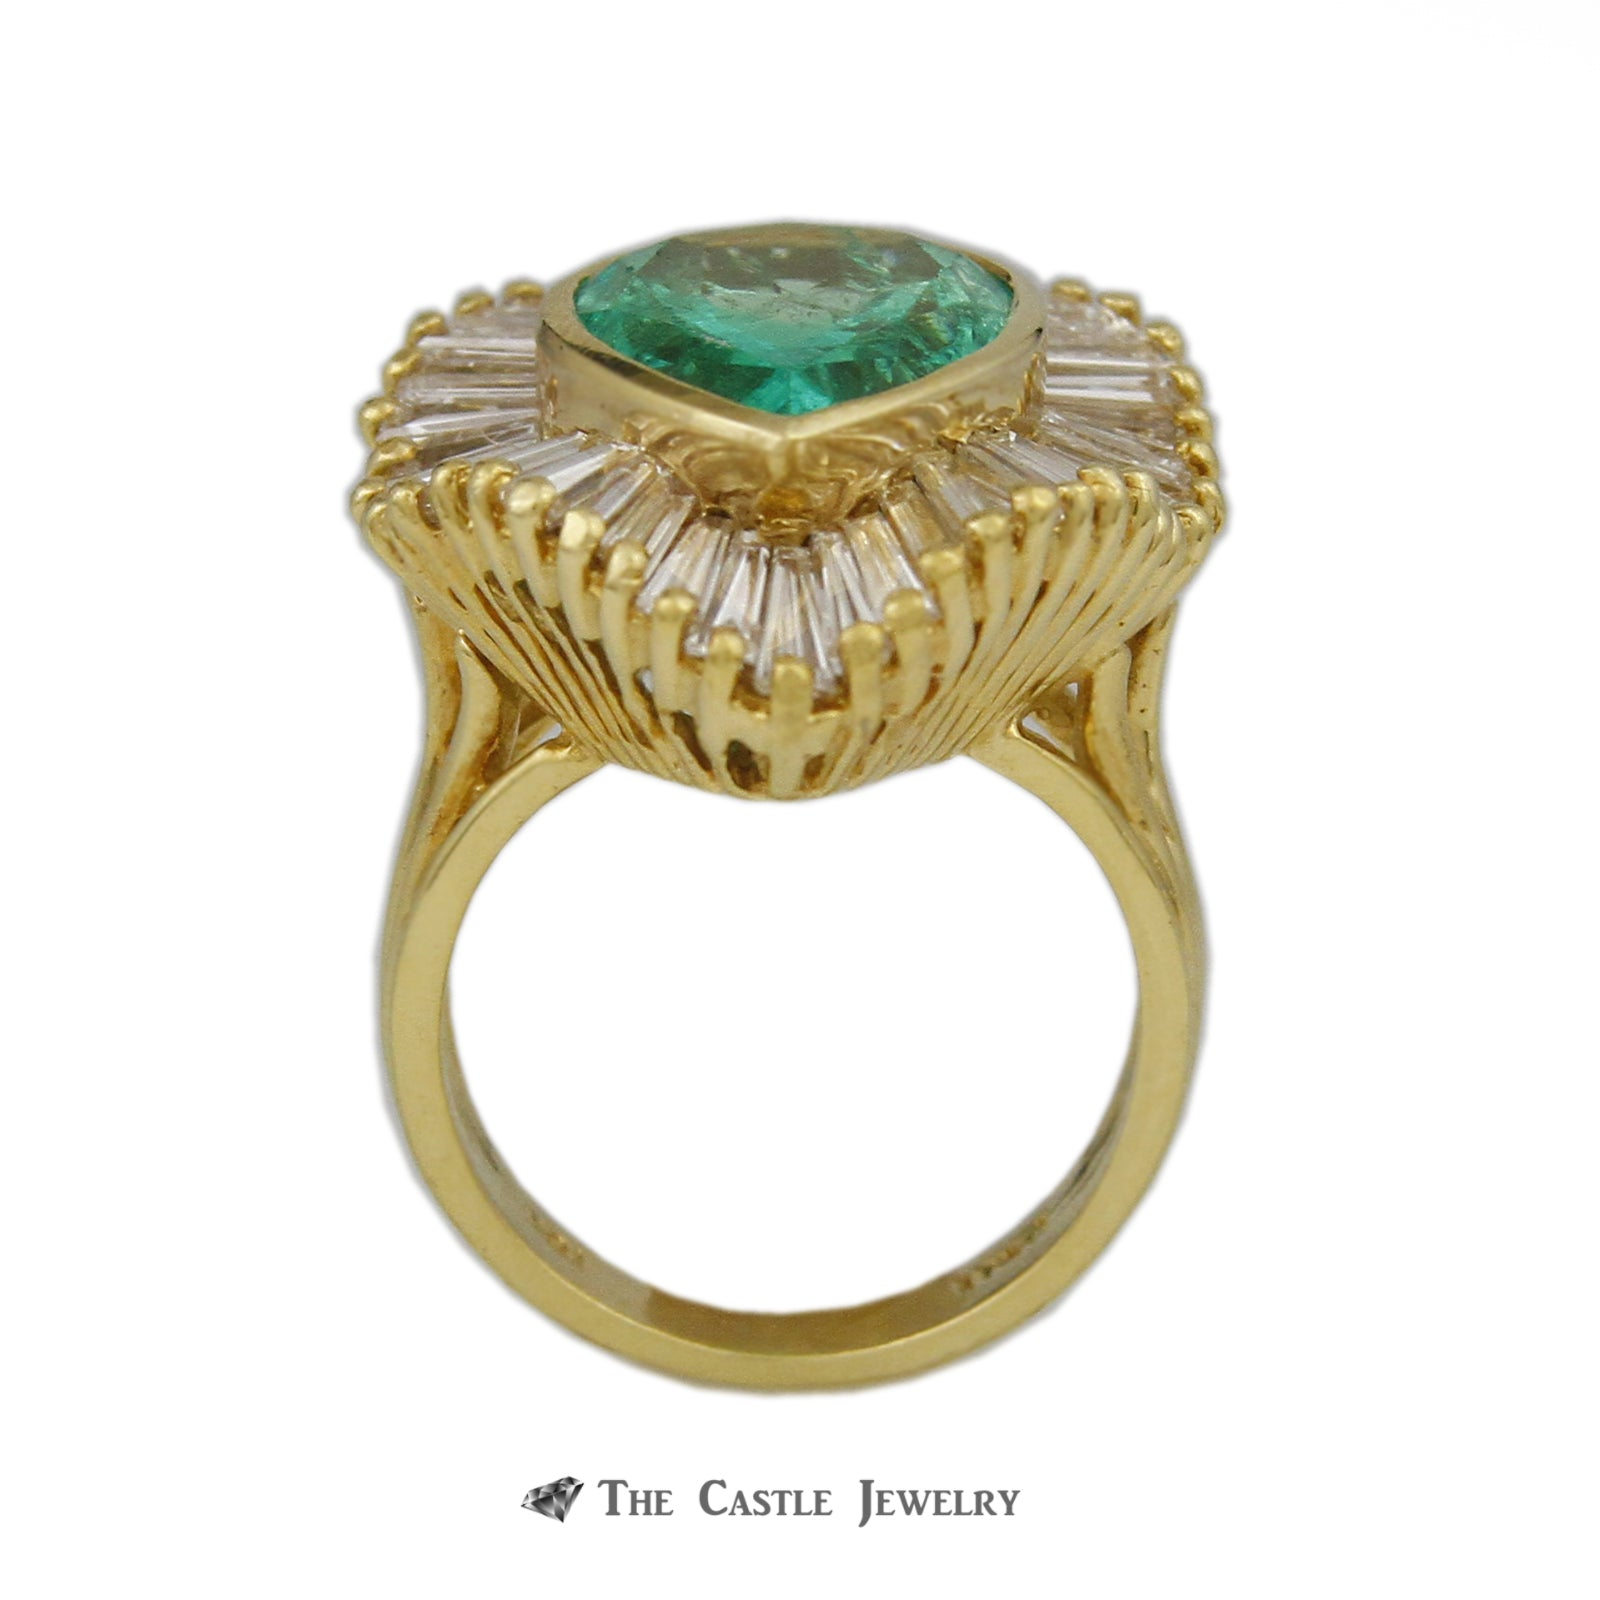 Pear Shaped 6.50ct Emerald Ring with Wavy 5.50cttw Baguette Halo-1